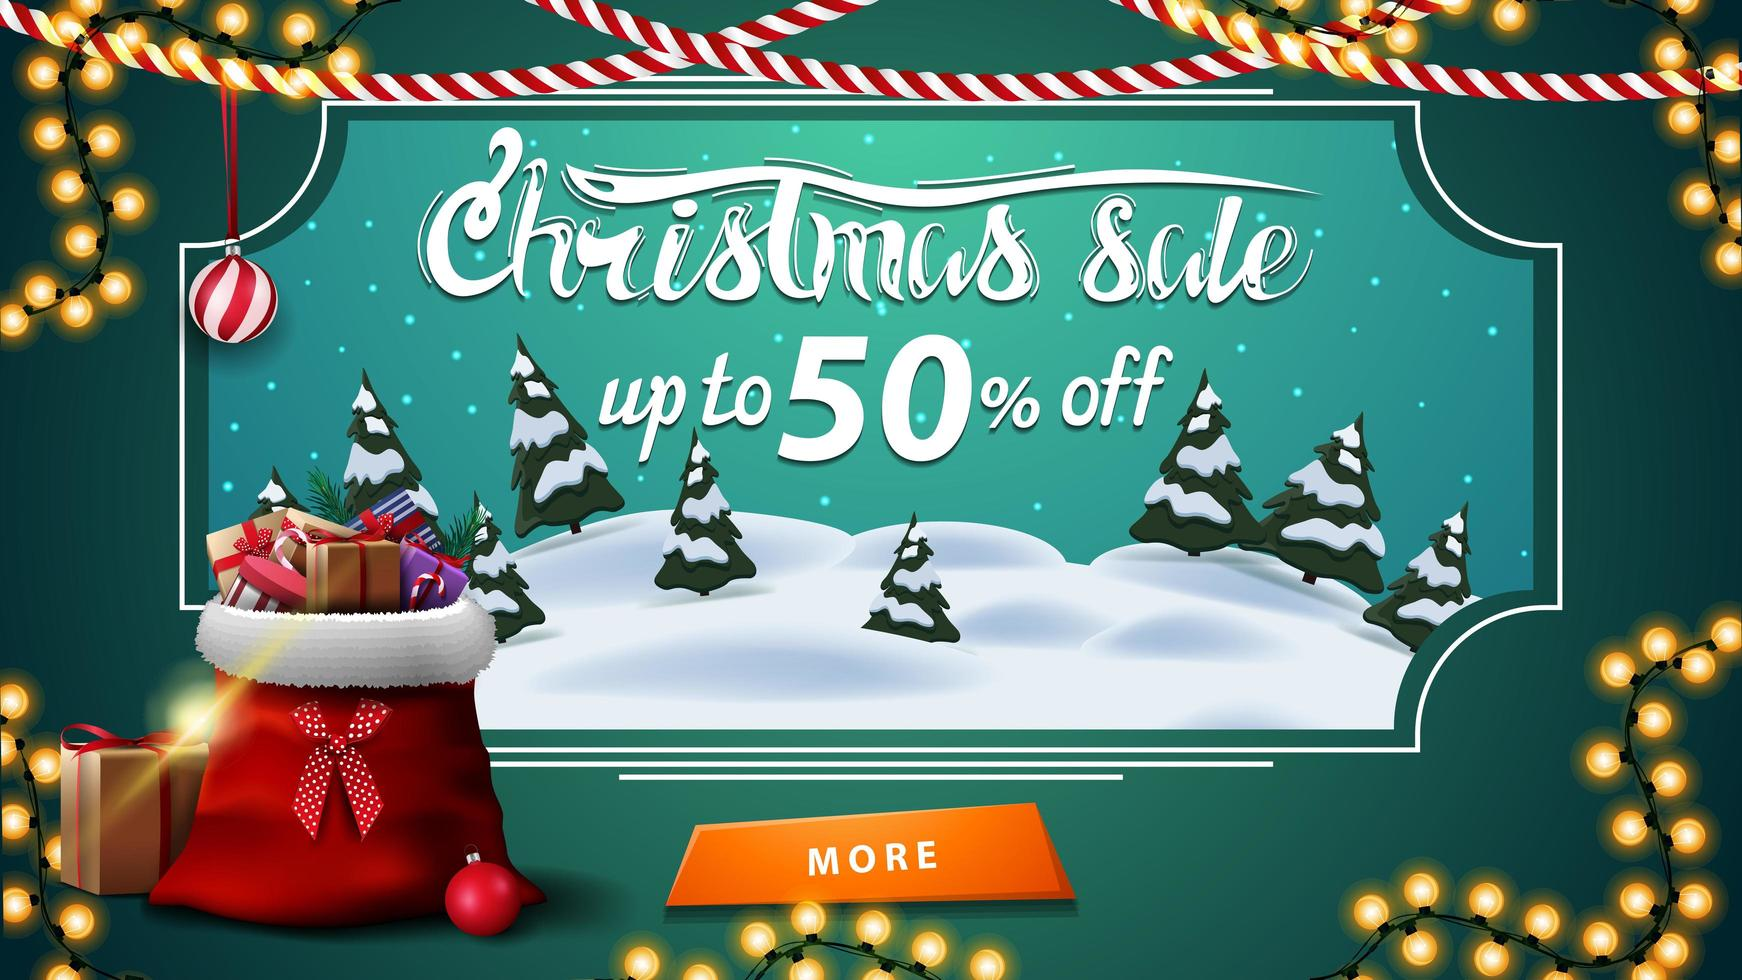 Christmas sale, up to 50 off, green discount banner with cartoon winter landscape, button and Santa Claus bag with presents vector